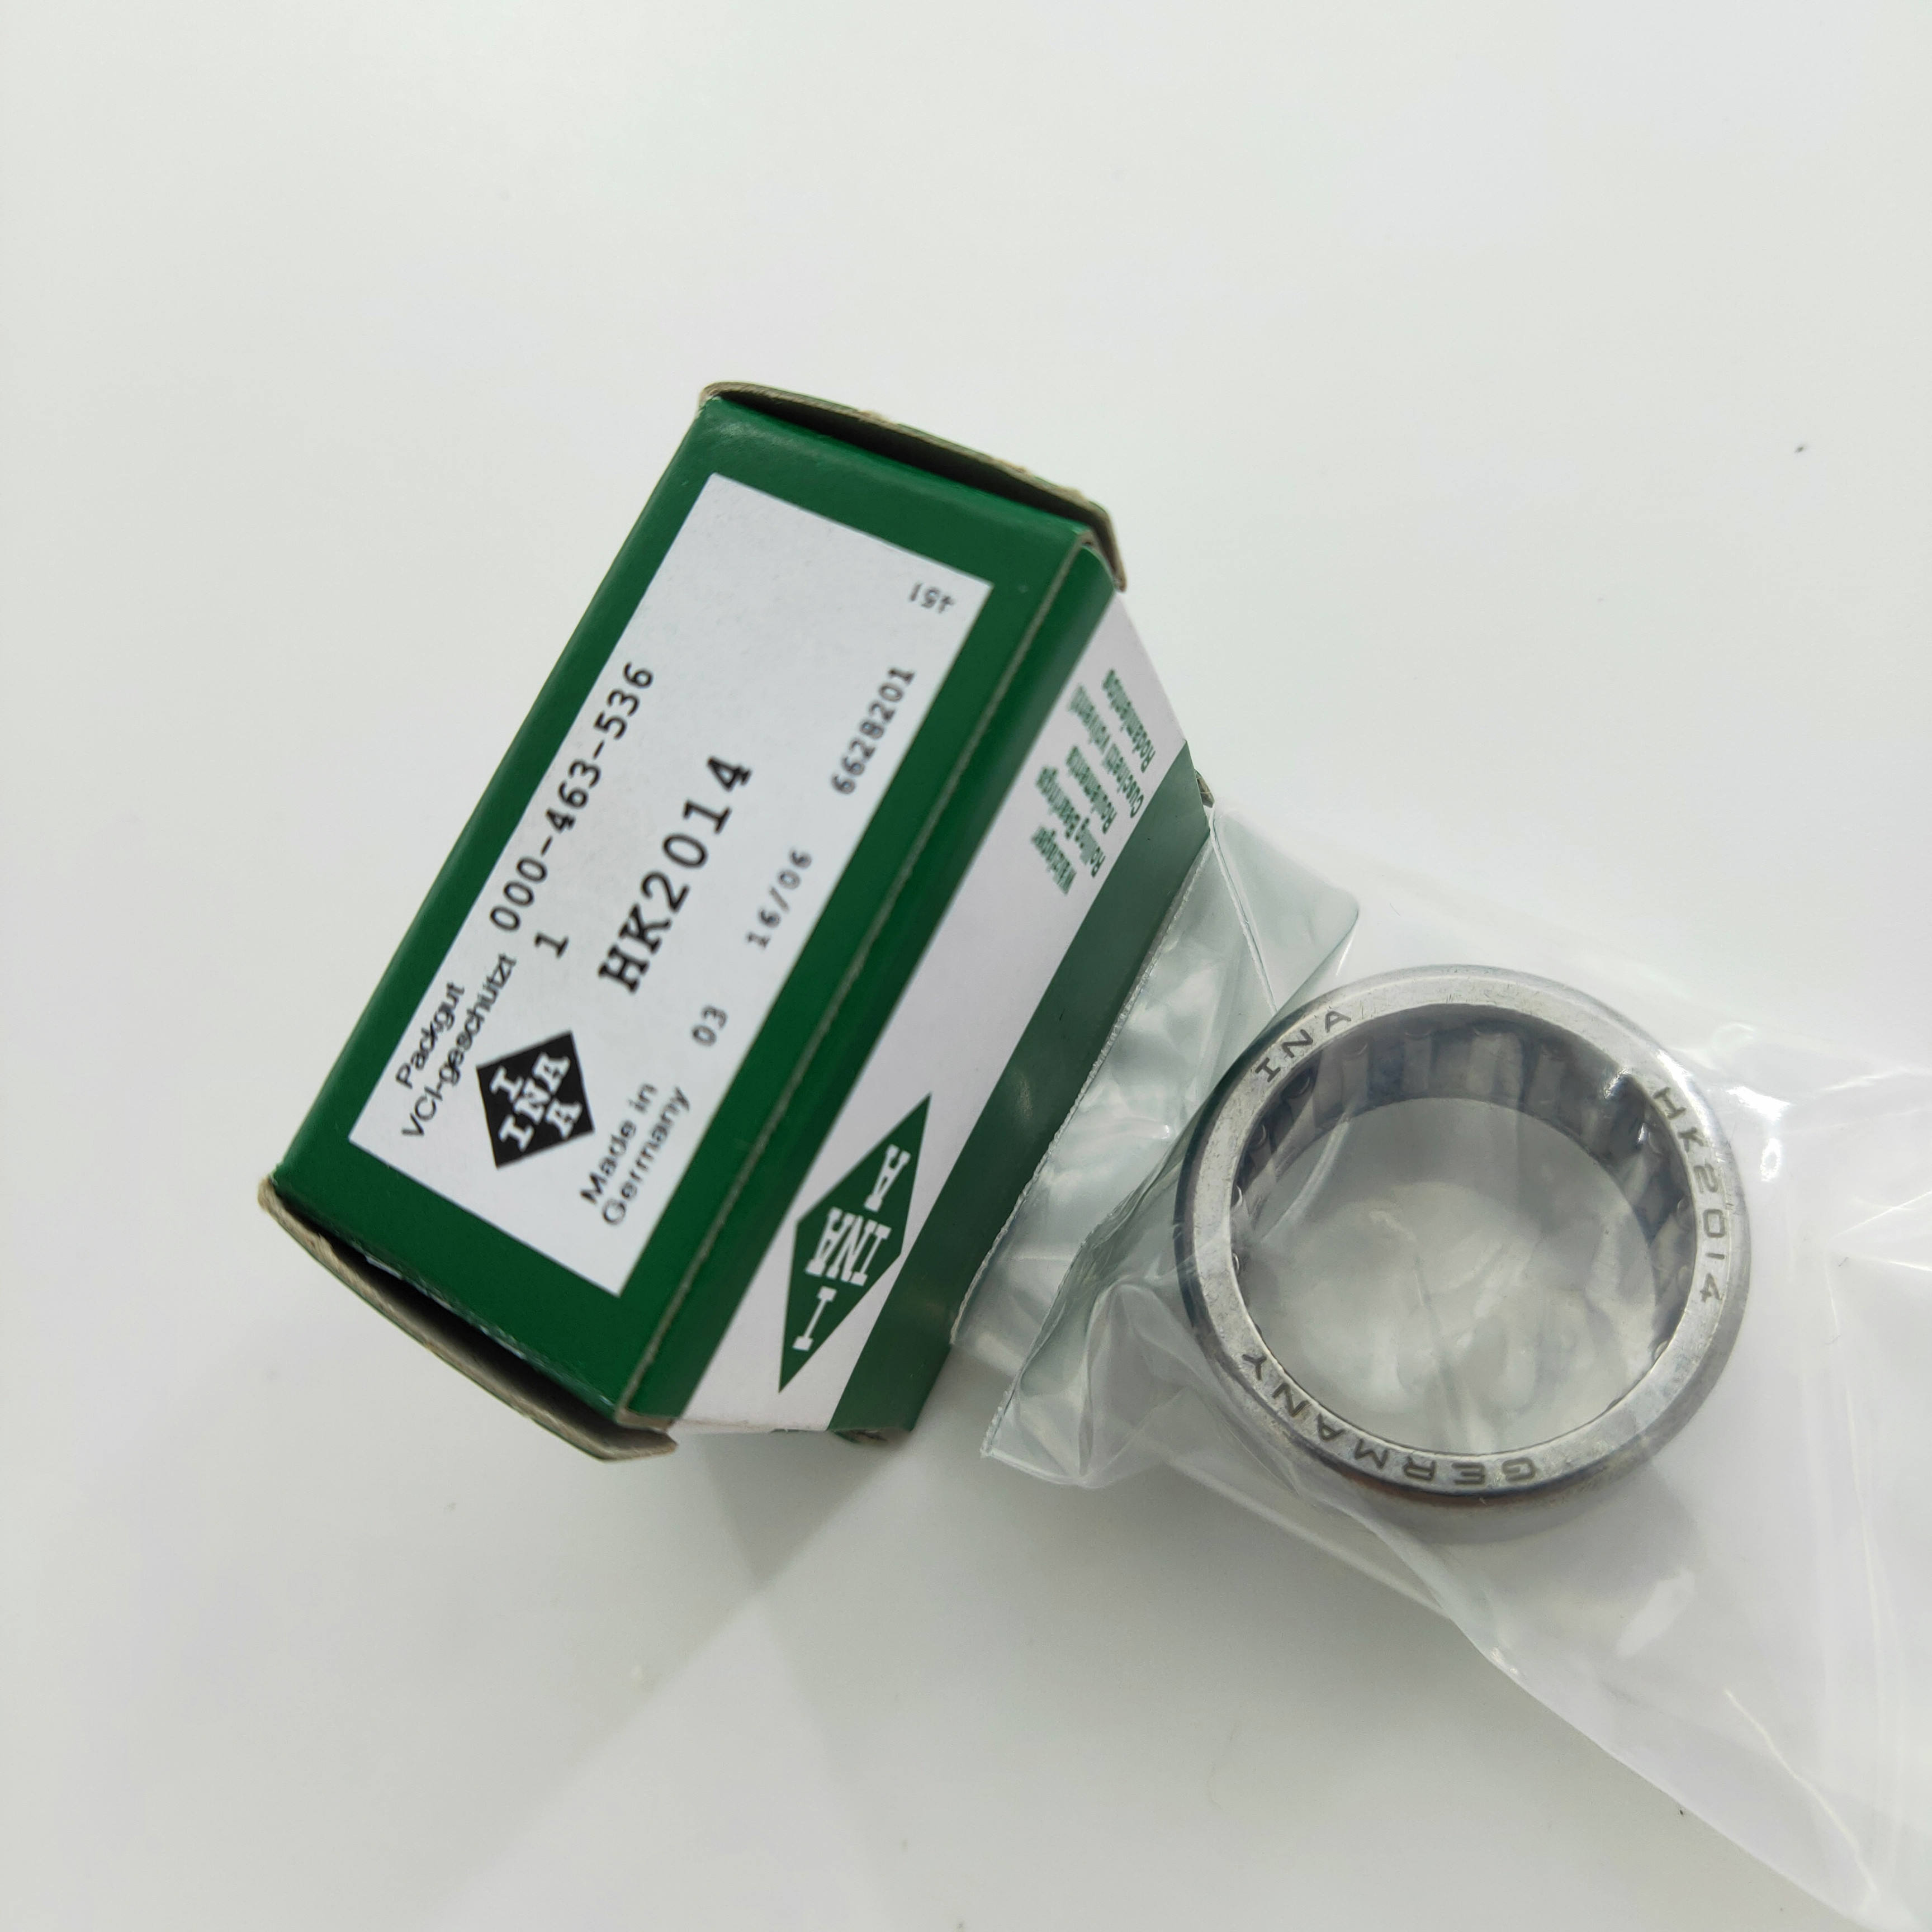 I.N.A HK series needle roller bearing HK2014 size 20x26x14mm